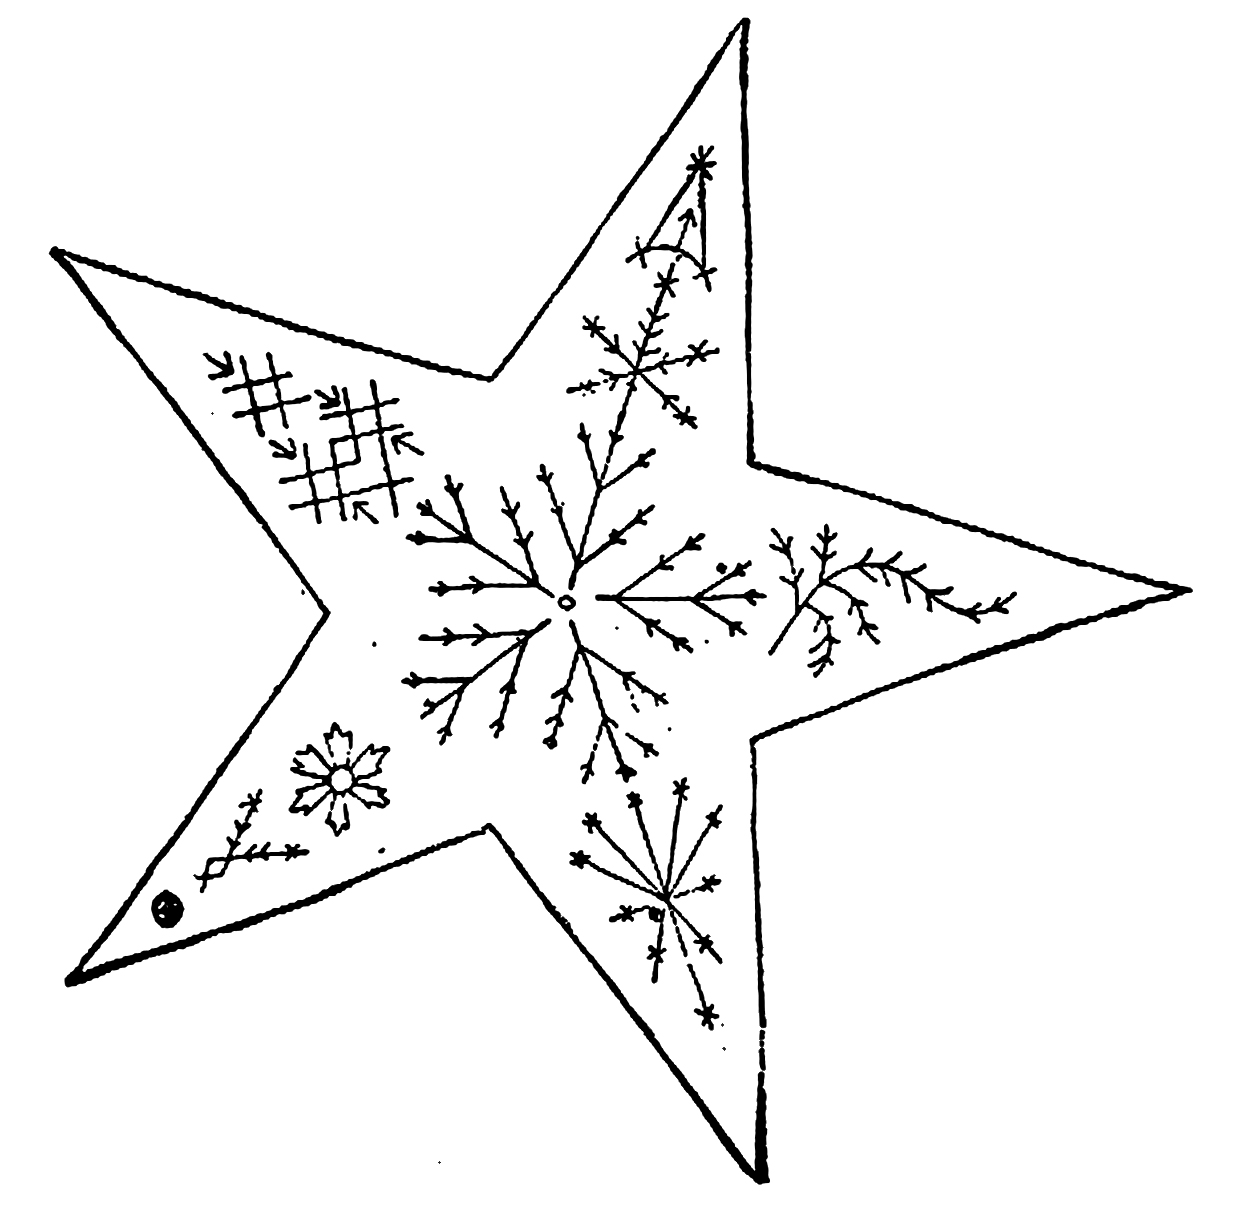 Vintage Embroidery Patterns - Vintage Embroidery Pattern Star